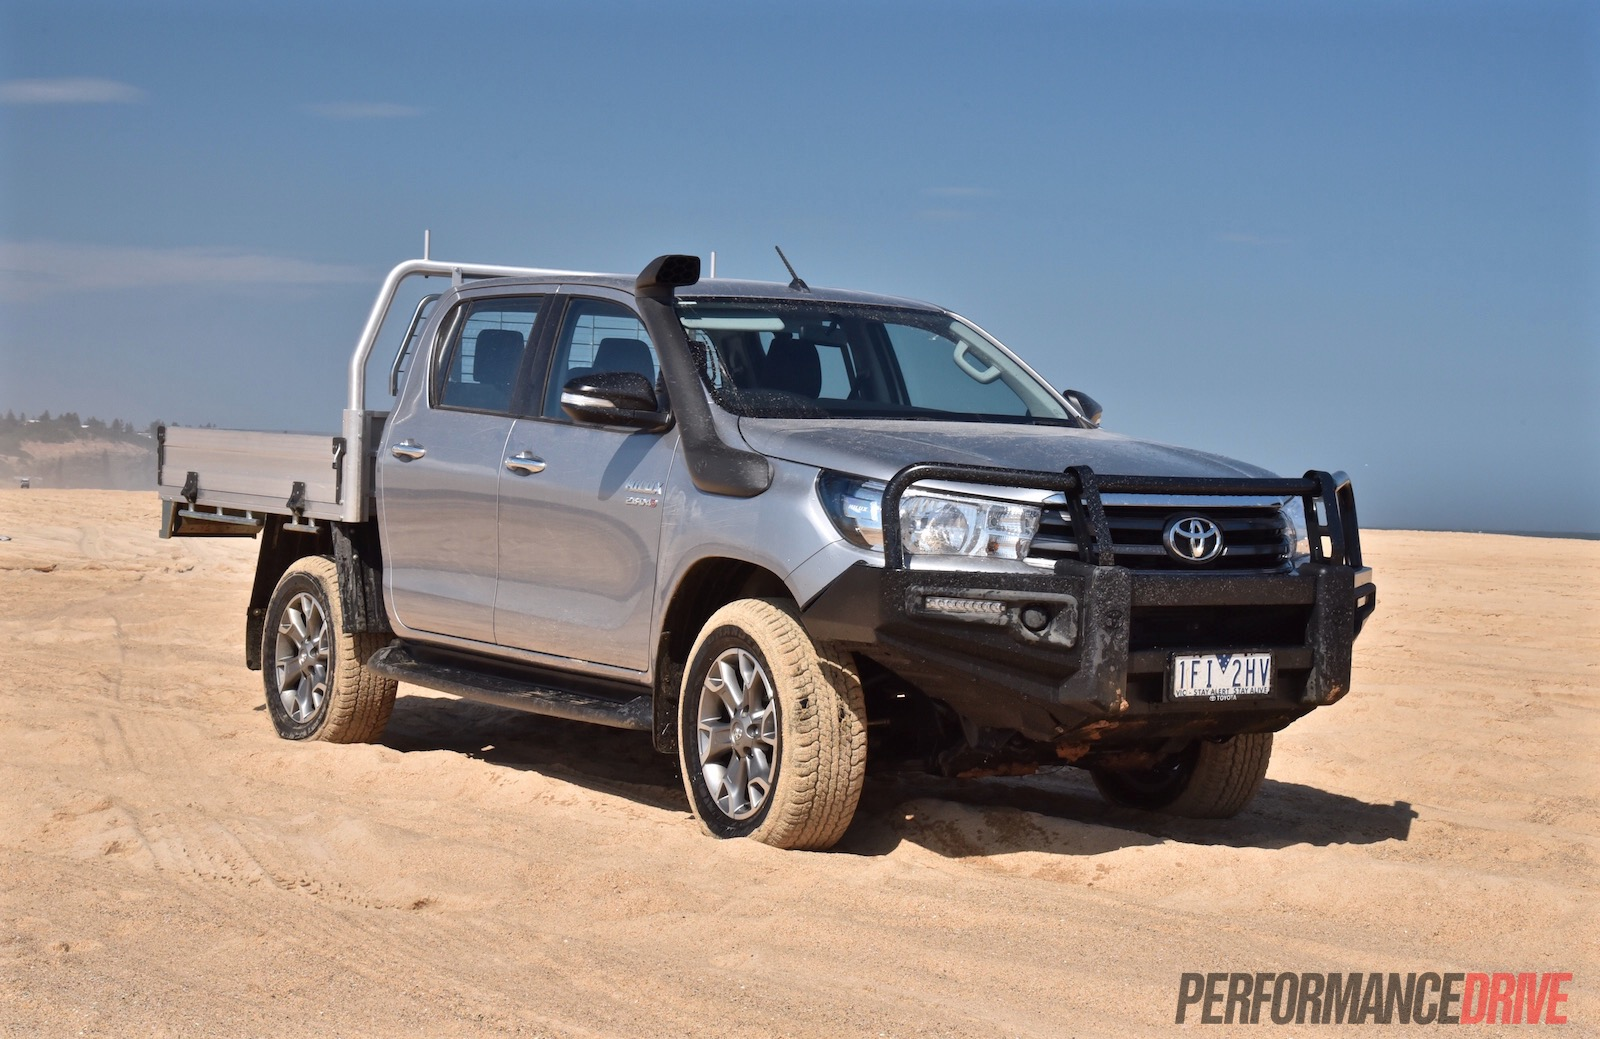 toyota hilux archives performancedrive. Black Bedroom Furniture Sets. Home Design Ideas